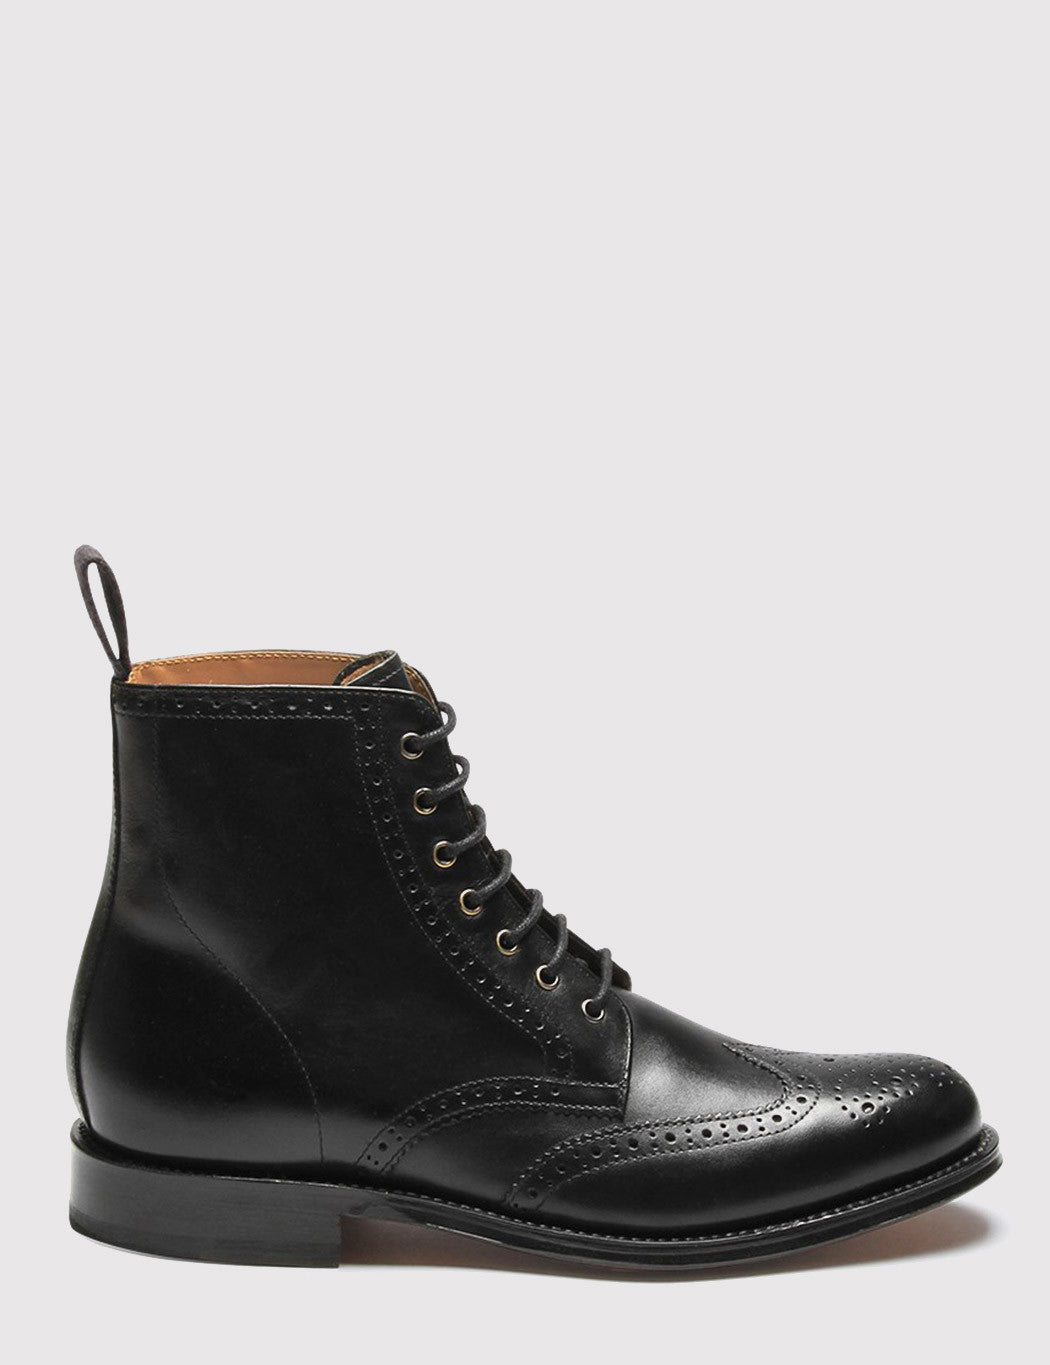 Womens Grenson Ella Brogue Boot - Black/Black